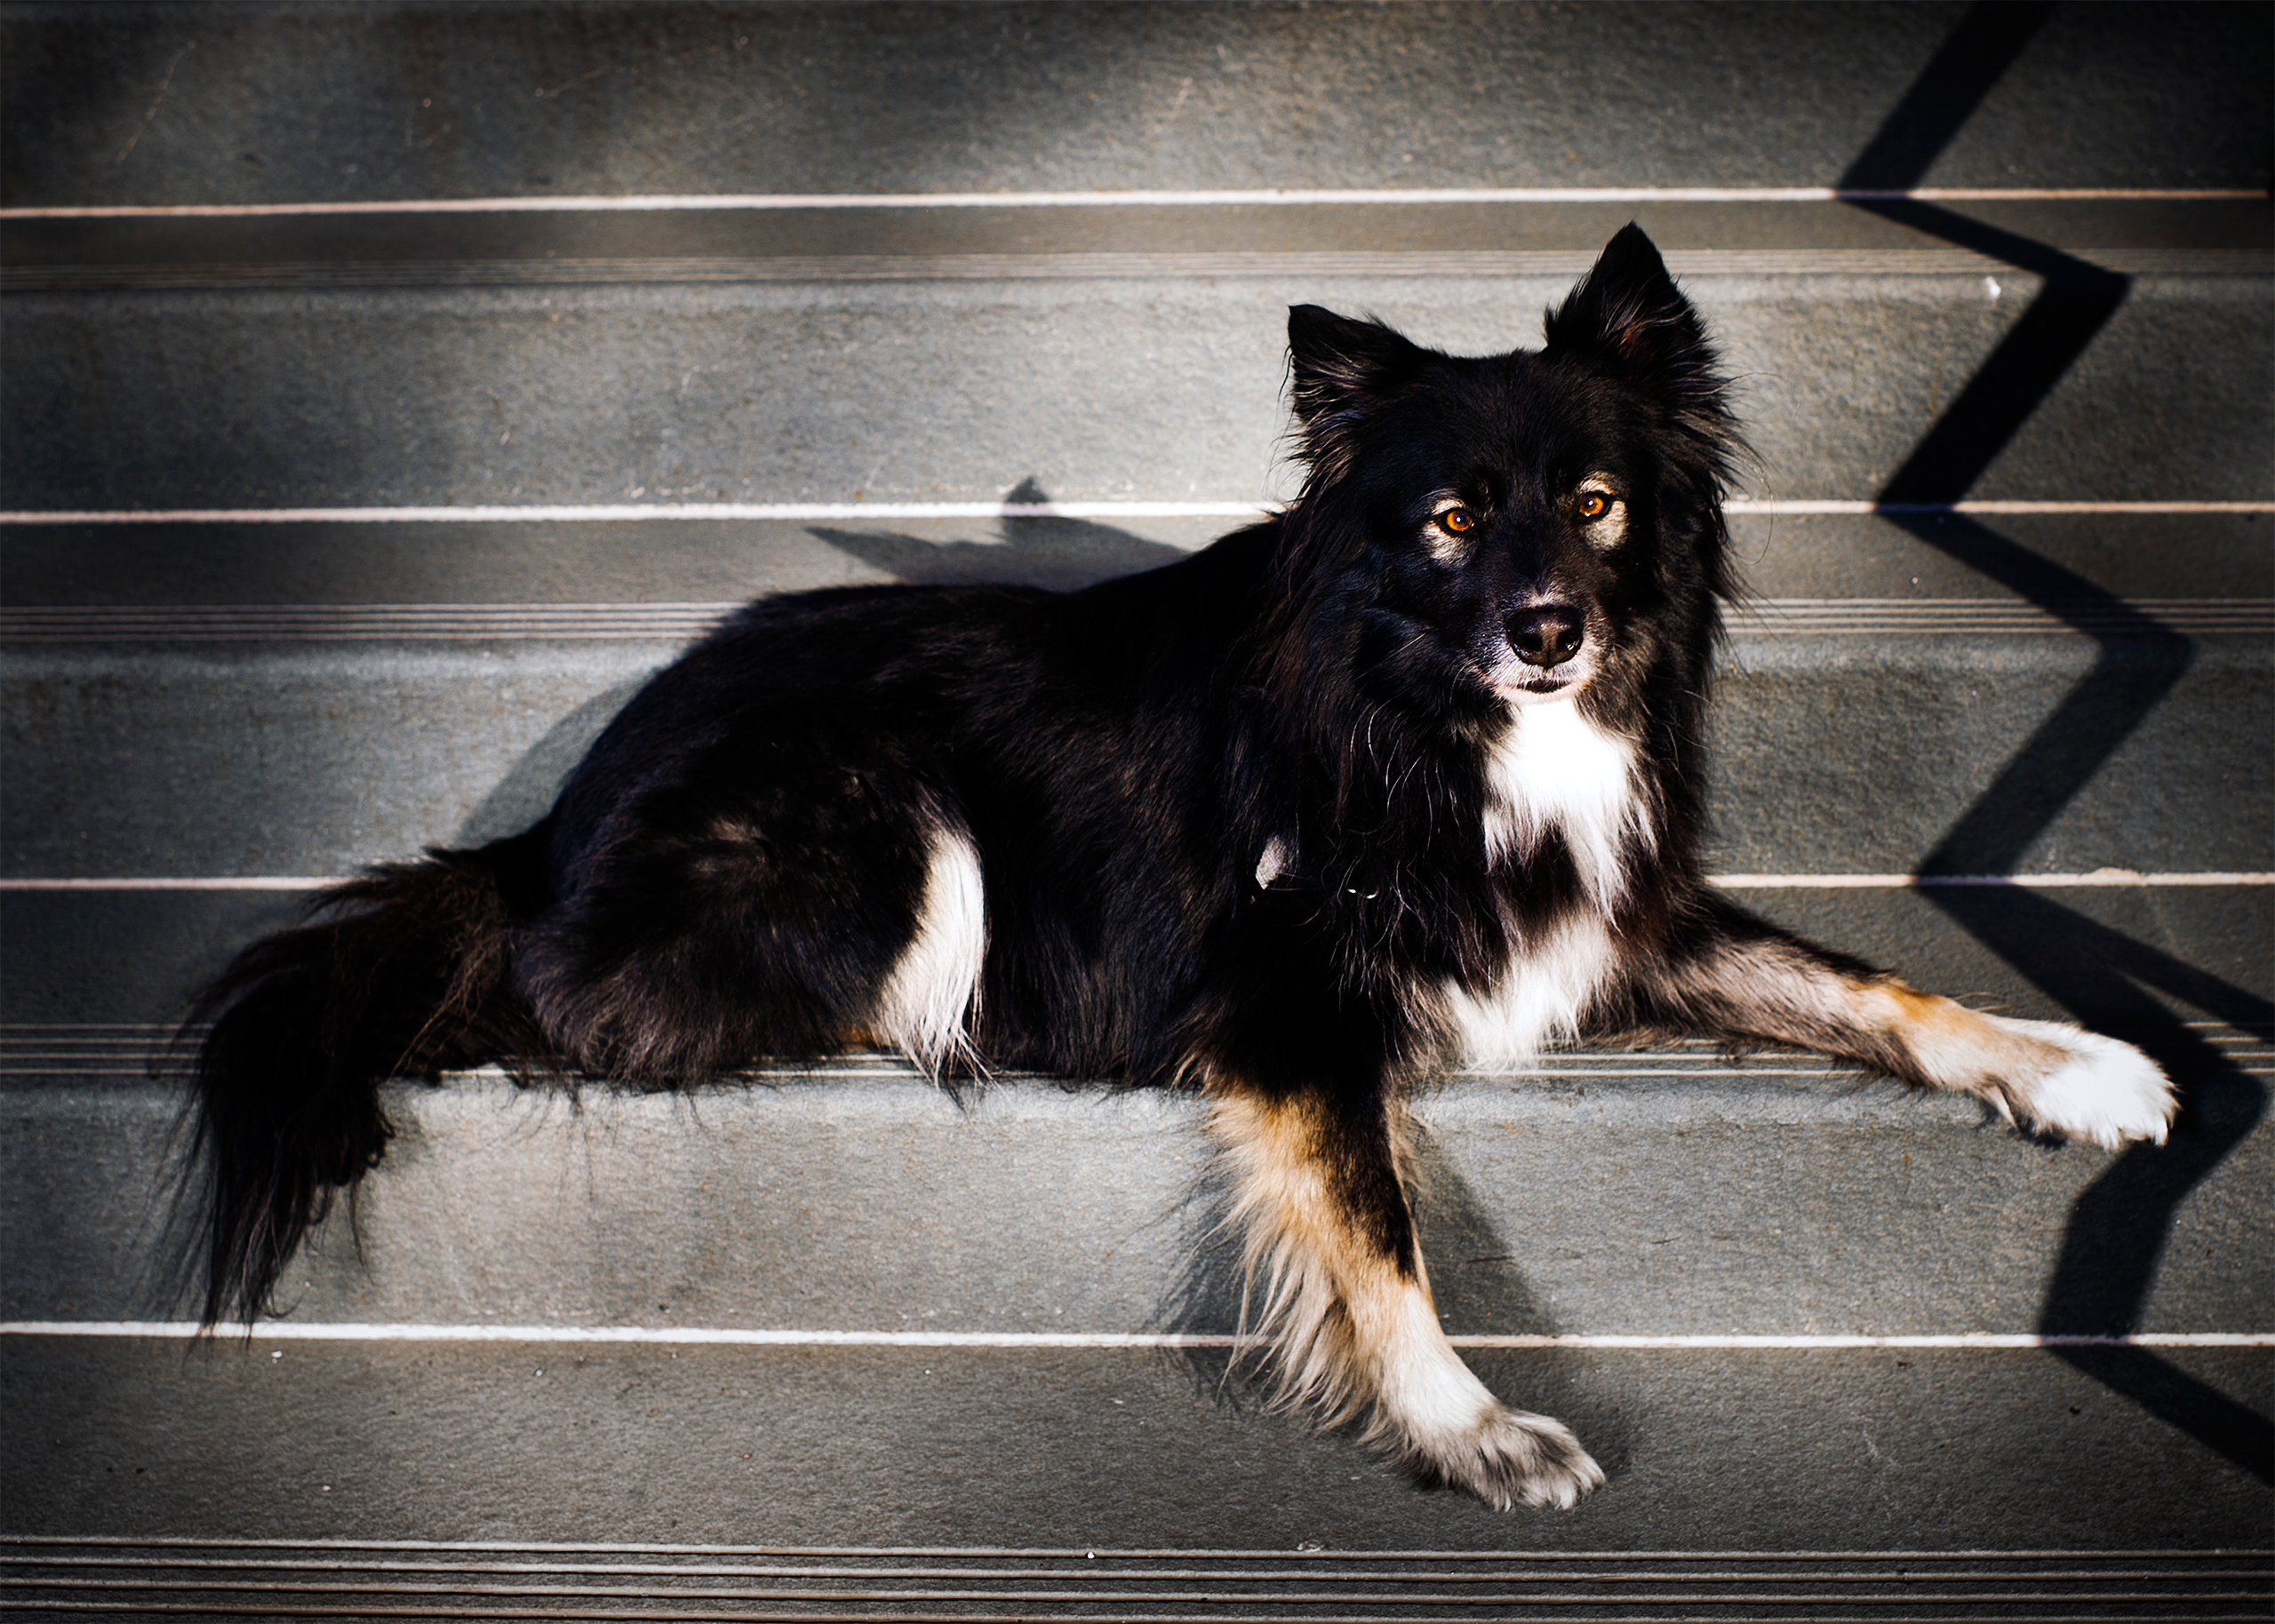 Scorch, a 9-year old Border Collie photographed in New York, NY on April 17, 2017.